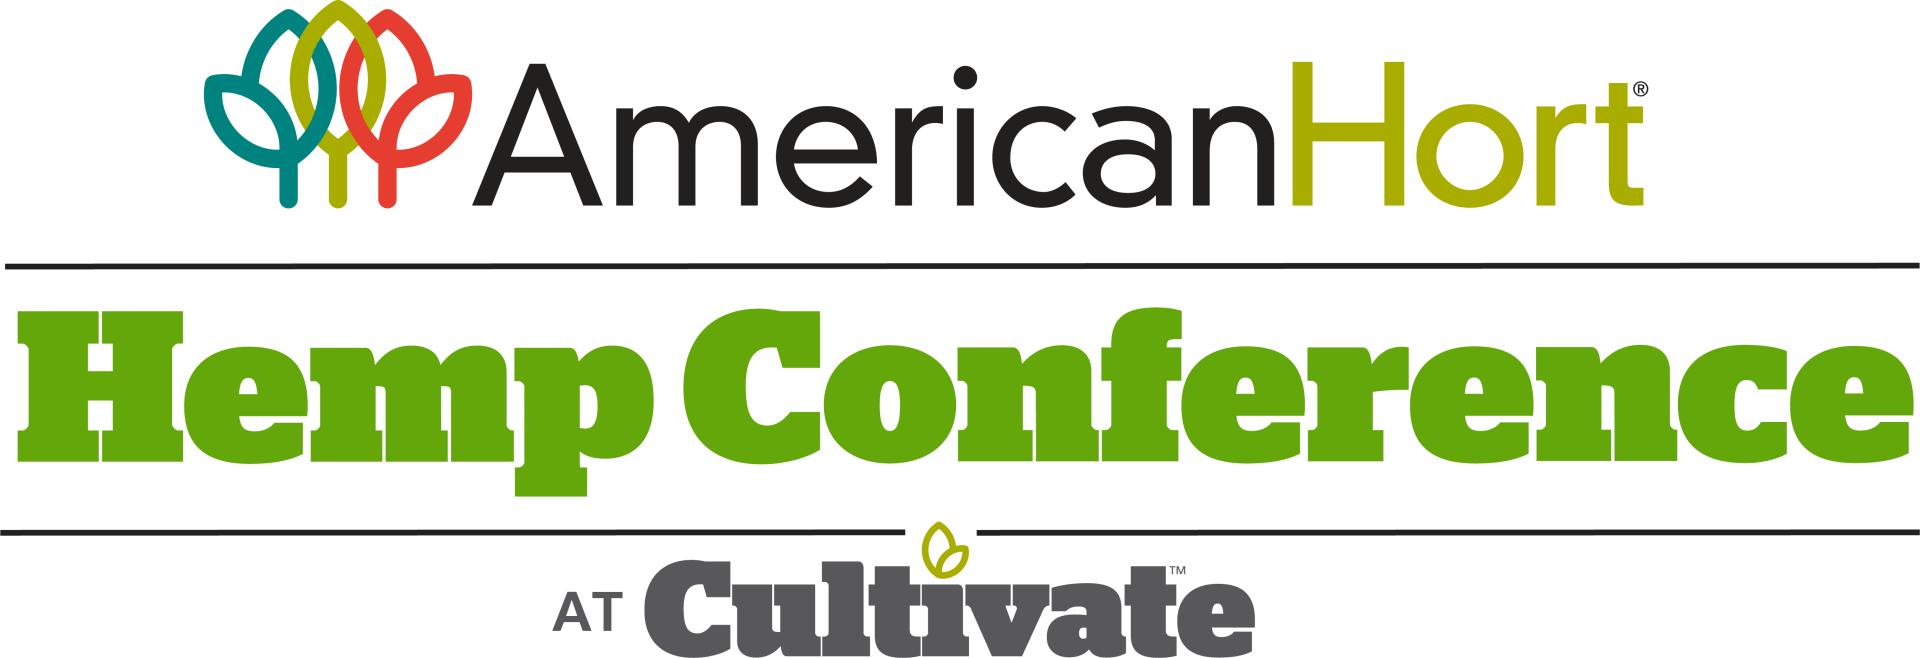 AmericanHort Hemp Conference at Cultivate